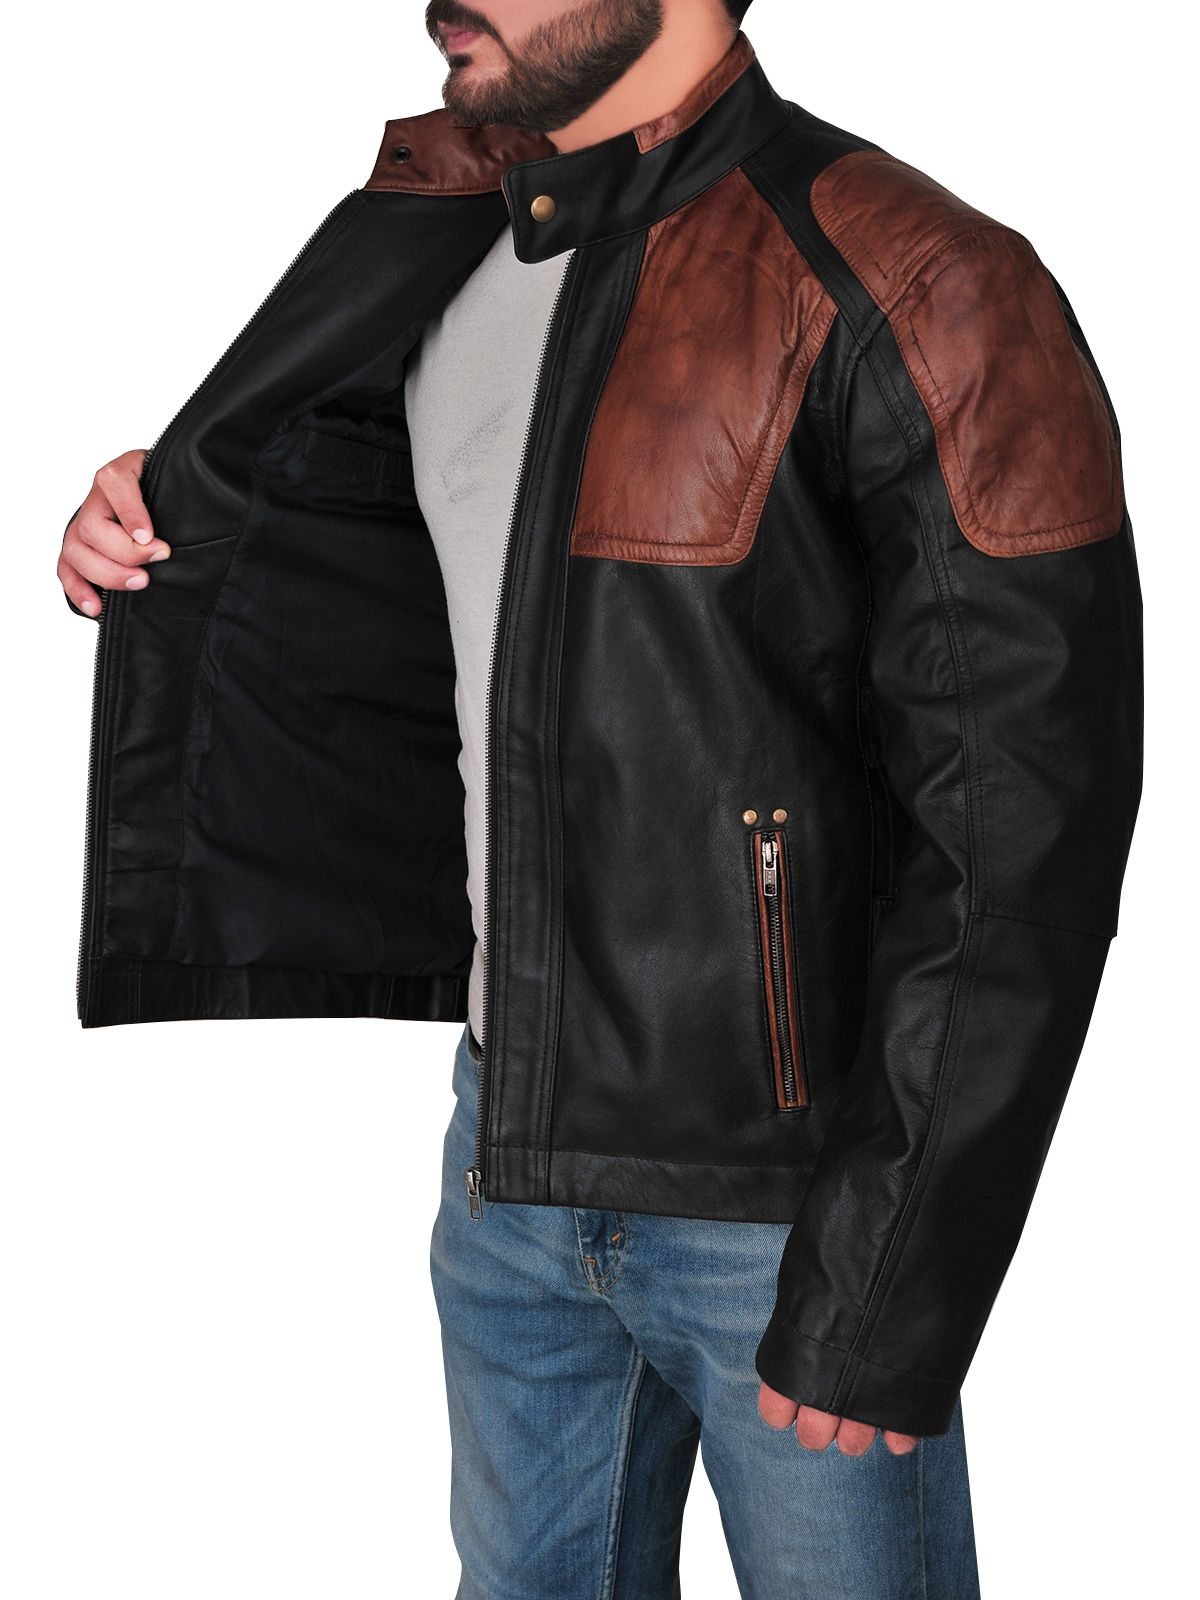 Harley Davidson Triple Vent Style Jacket Leather jacket